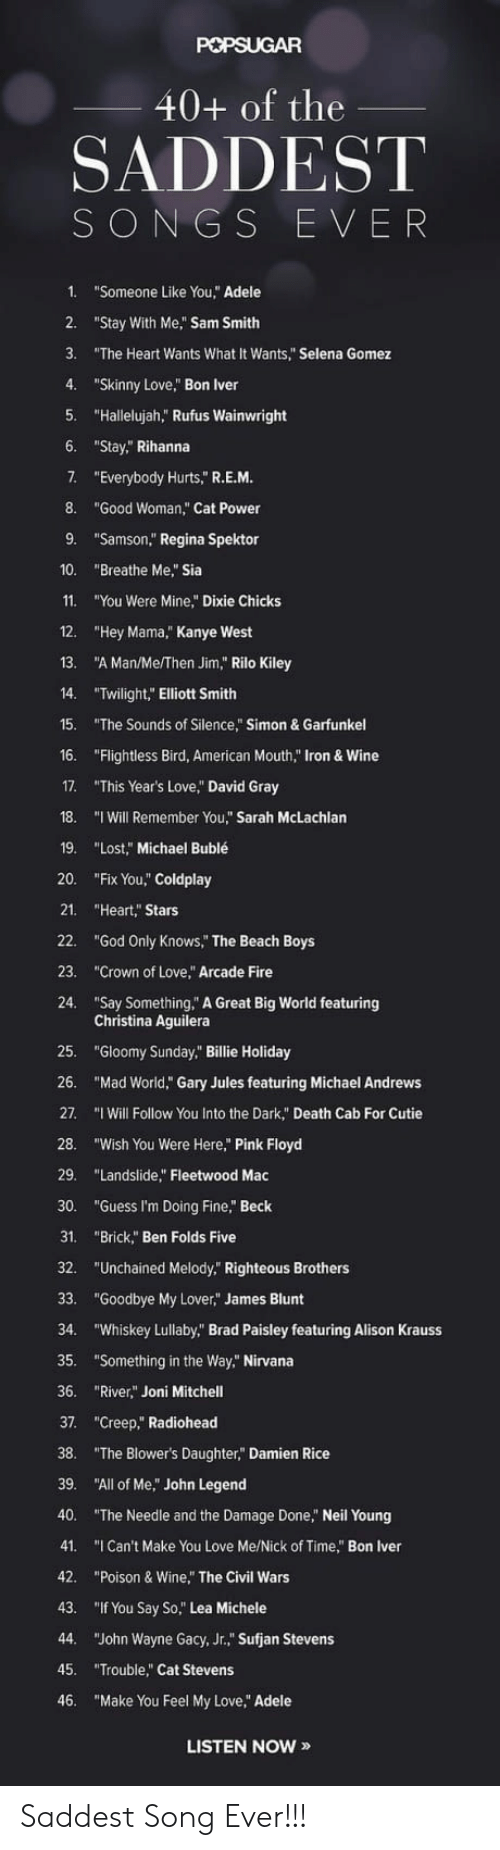 "Pink Floyd: 40+ of the  SADDEST  SONGS EVER  1. ""Someone Like You, Adele  2. ""Stay With Me, Sam Smith  3. ""The Heart Wants What It Wants,"" Selena Gomez  4. ""Skinny Love,"" Bon lver  5. ""Hallelujah,"" Rufus Wainwright  6. ""Stay, Rihanna  7.  ""Everybody Hurts,"" R.E.M  8. ""Good Woman,"" Cat Power  9. ""Samson,"" Regina Spektor  10. ""Breathe Me,"" Sia  11. ""You Were Mine Dixie Chicks  12. ""Hey Mama,"" Kanye West  13. ""A Man/Me/Then Jim,"" Rilo Kiley  14. ""Twilight,"" Elliott Smith  15. The Sounds of Silence,"" Simon& Garfunkel  16. ""Flightless Bird, American Mouth,"" Iron & Wine  17. ""This Year's Love,"" David Gray  18. ""I Will Remember You,"" Sarah McLachlan  19. ""Lost,"" Michael Bublé  20. ""Fix You,"" Coldplay  21. ""Heart,"" Stars  22. ""God Only KnowS,"" The Beach Boys  23. ""Crown of Love,"" Arcade Fire  24. ""Say Something,"" A Great Big World featuring  Christina Aguilera  25. ""Gloomy Sunday."" Billie Holiday  26. ""Mad World,"" Gary Jules featuring Michael Andrews  27. ""I Will Follow You Into the Dark"" Death Cab For Cutie  28· ""Wish You Were Here,"" Pink Floyd  29. ""Landslide"" Fleetwood Mac  30. ""Guess I'm Doing Fine,"" Beck  31. ""Brick,"" Ben Folds Five  32. ""Unchained Melody,"" Righteous Brothers  33. ""Goodbye My Lover,"" James Blunt  34. ""Whiskey Lullaby"" Brad Paisley featuring Alison Krauss  35. ""Something in the Way,"" Nirvana  36. ""River"" Joni Mitchell  37. ""Creep,"" Radiohead  38. The Blower's Daughter, Damien Rice  39. ""All of Me,"" John Legend  40. ""The Needle and the Damage Done, Neil Young  41. ""I Can't Make You Love Me/Nick of Time, Bon Iver  42. ""Poison & Wine,"" The Civil Wars  43. ""If You Say So,"" Lea Michele  44. ""John Wayne Gacy, Jr.,"" Sufjan Stevens  45. ""Trouble,"" Cat Stevens  46. ""Make You Feel My Love,"" Adele  LISTEN NOW » Saddest Song Ever!!!"